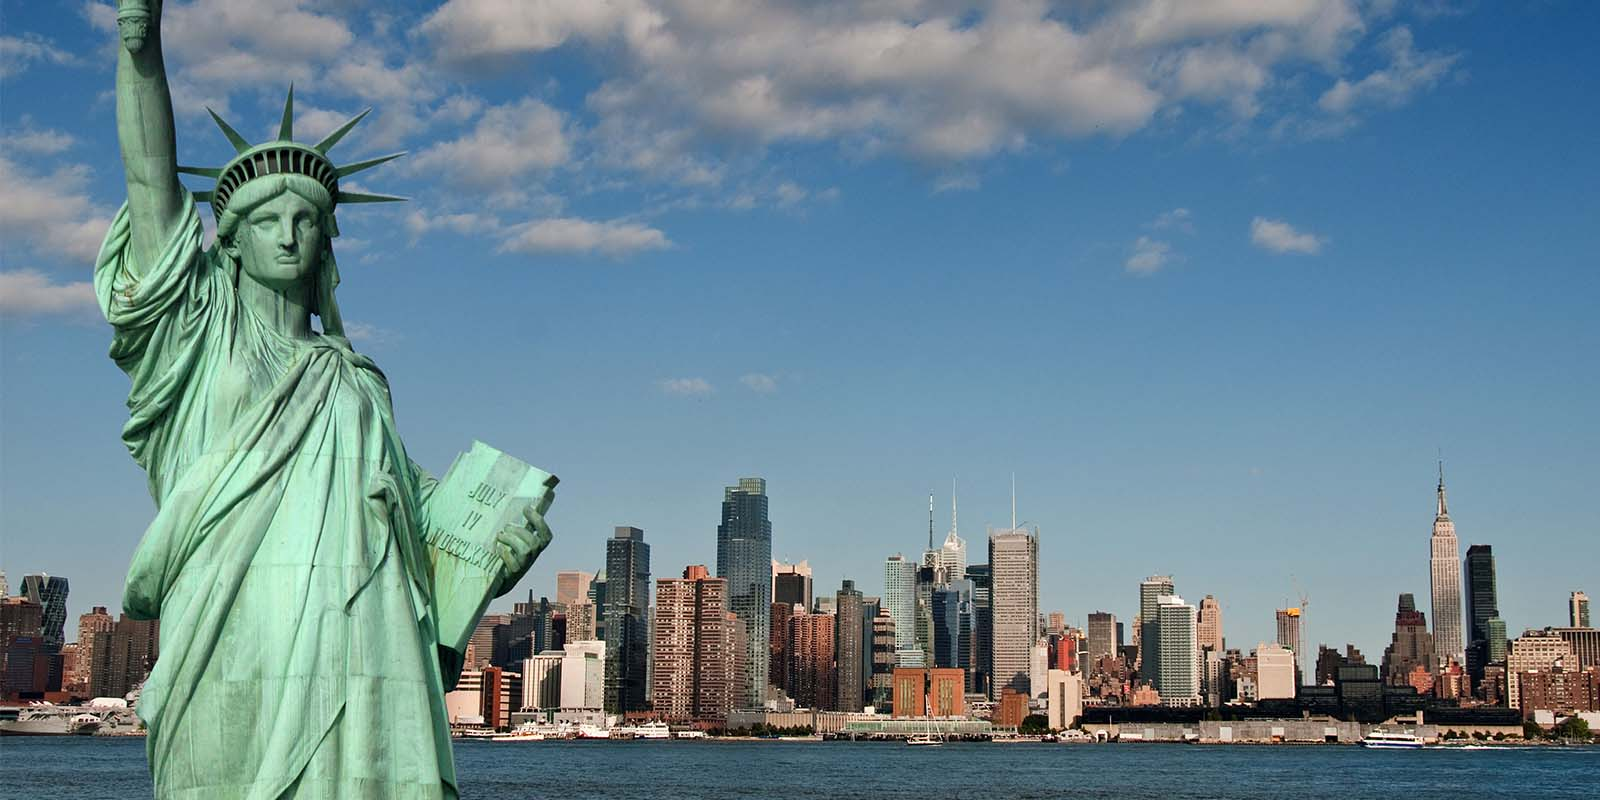 Statue of Liberty and New York City